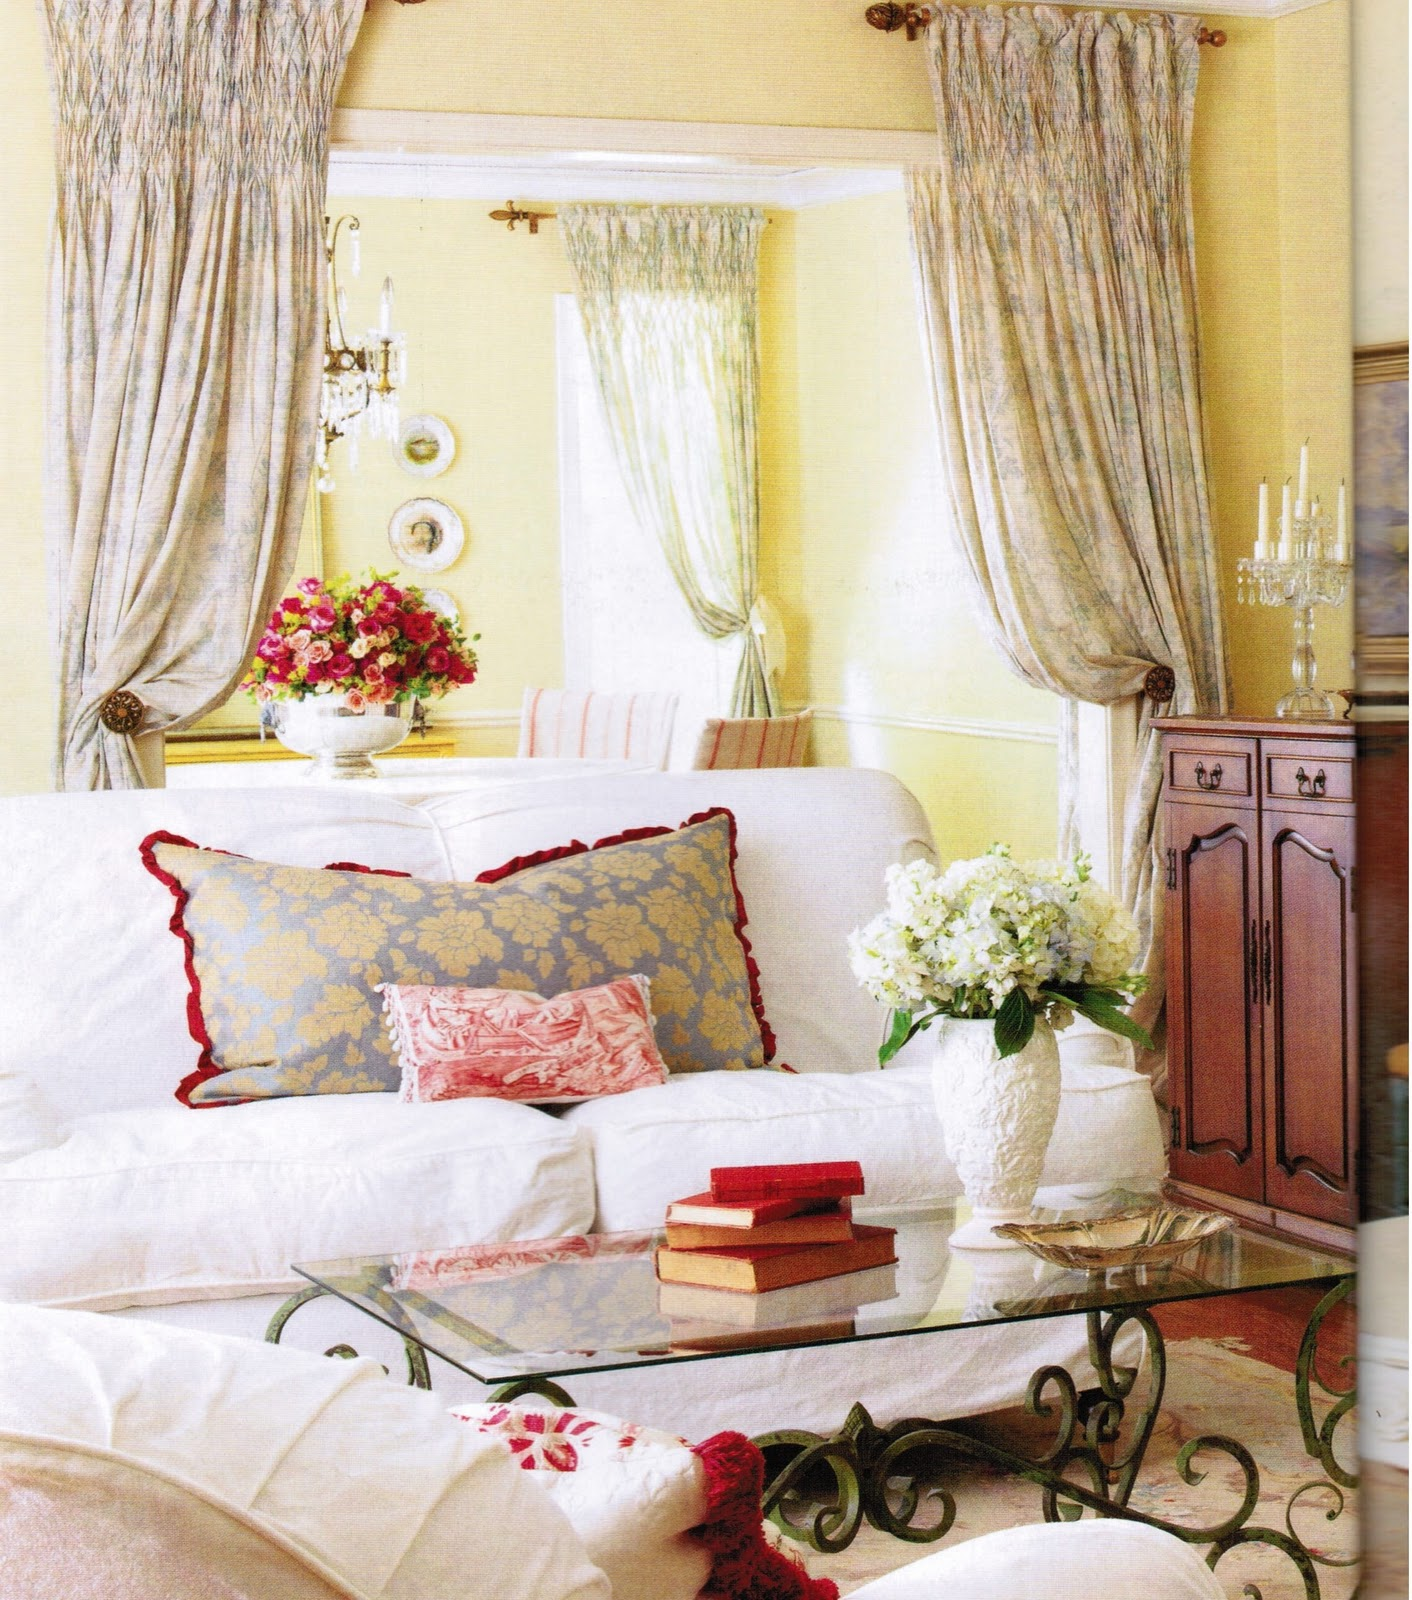 Decorating Idea Living Room: Maison Decor: French Country: Enchanting Yellow & White